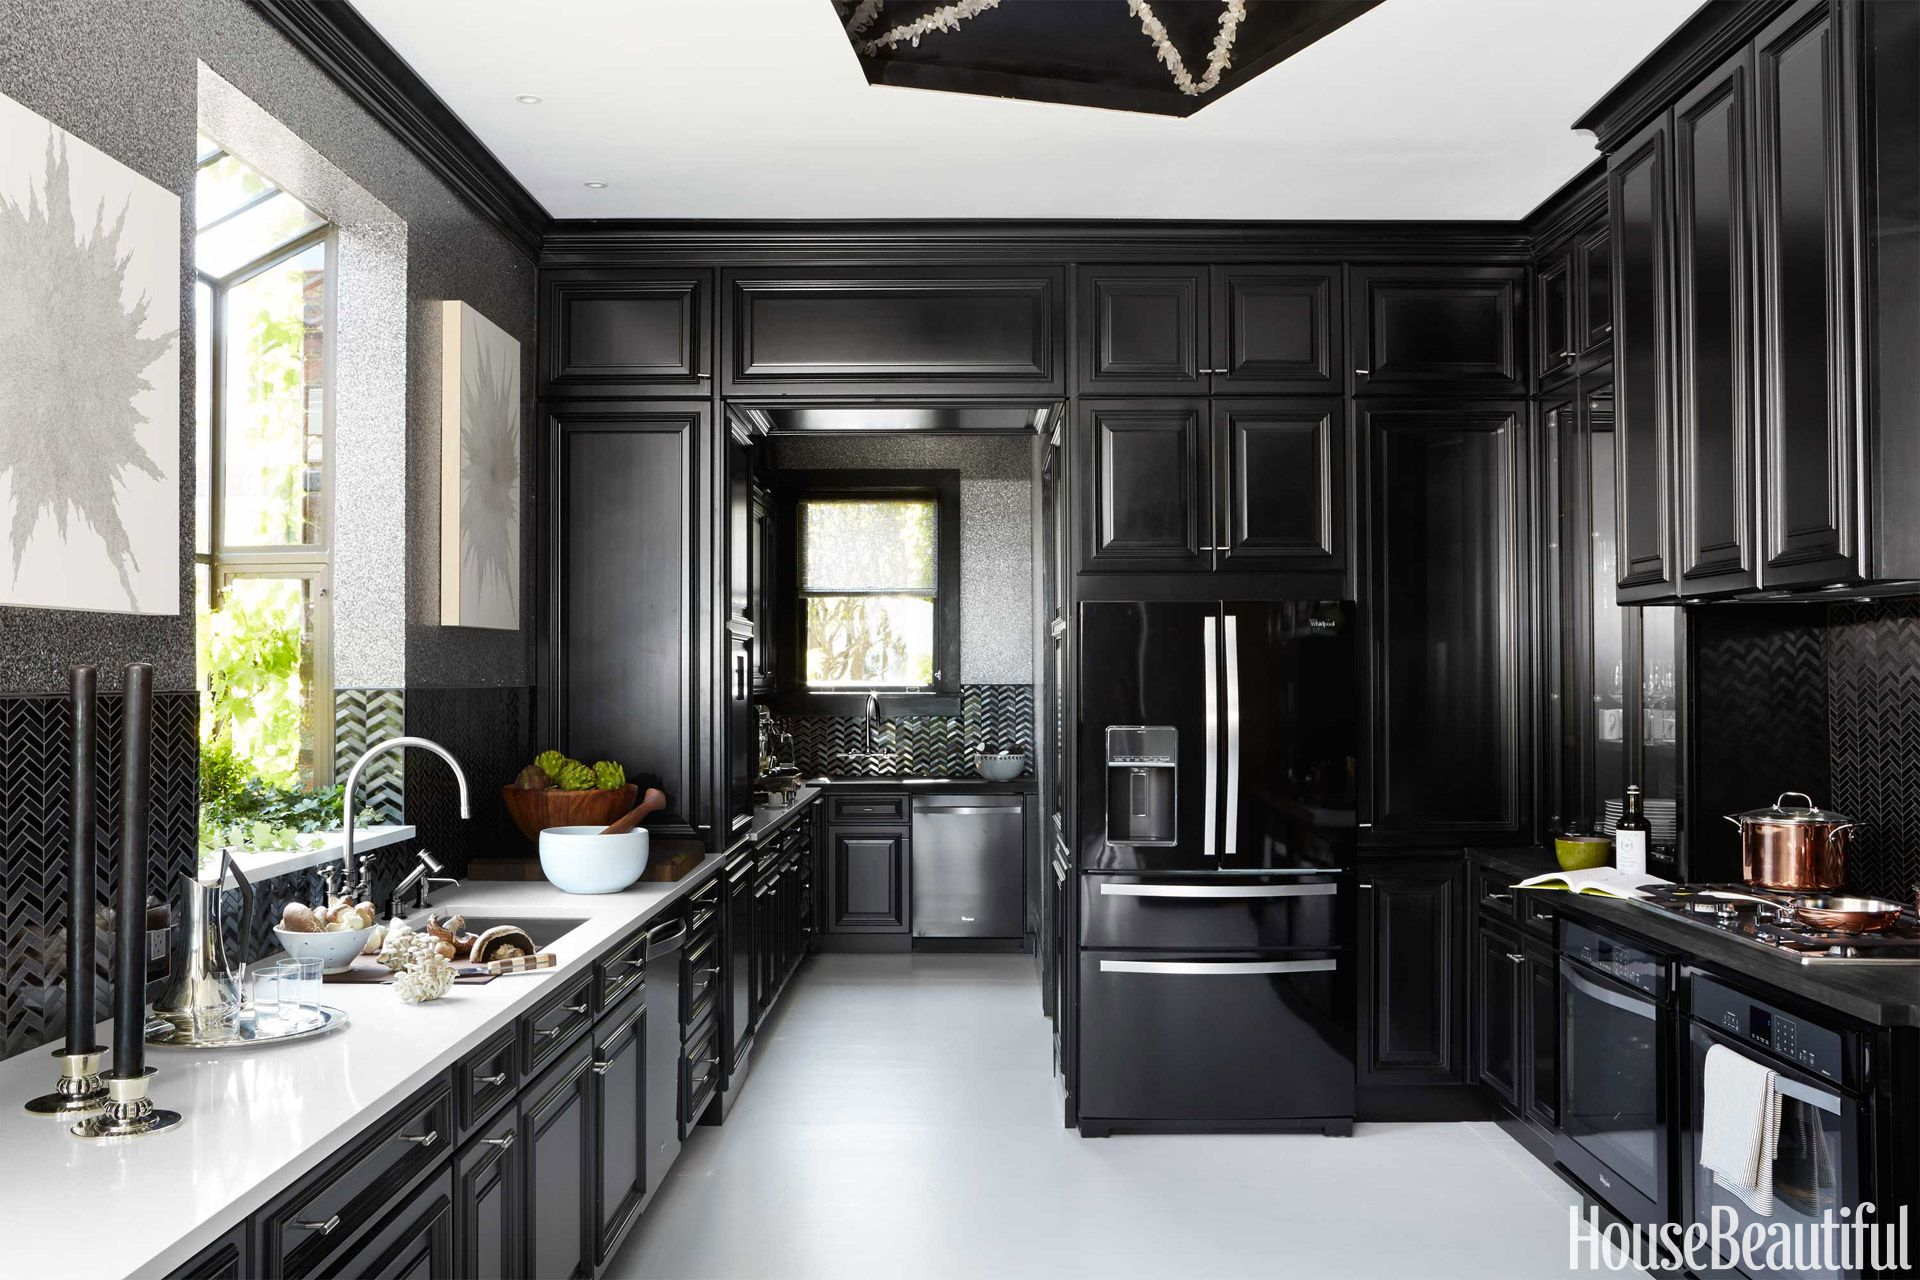 How To Decorate With Black And White Black Kitchen Cabinets